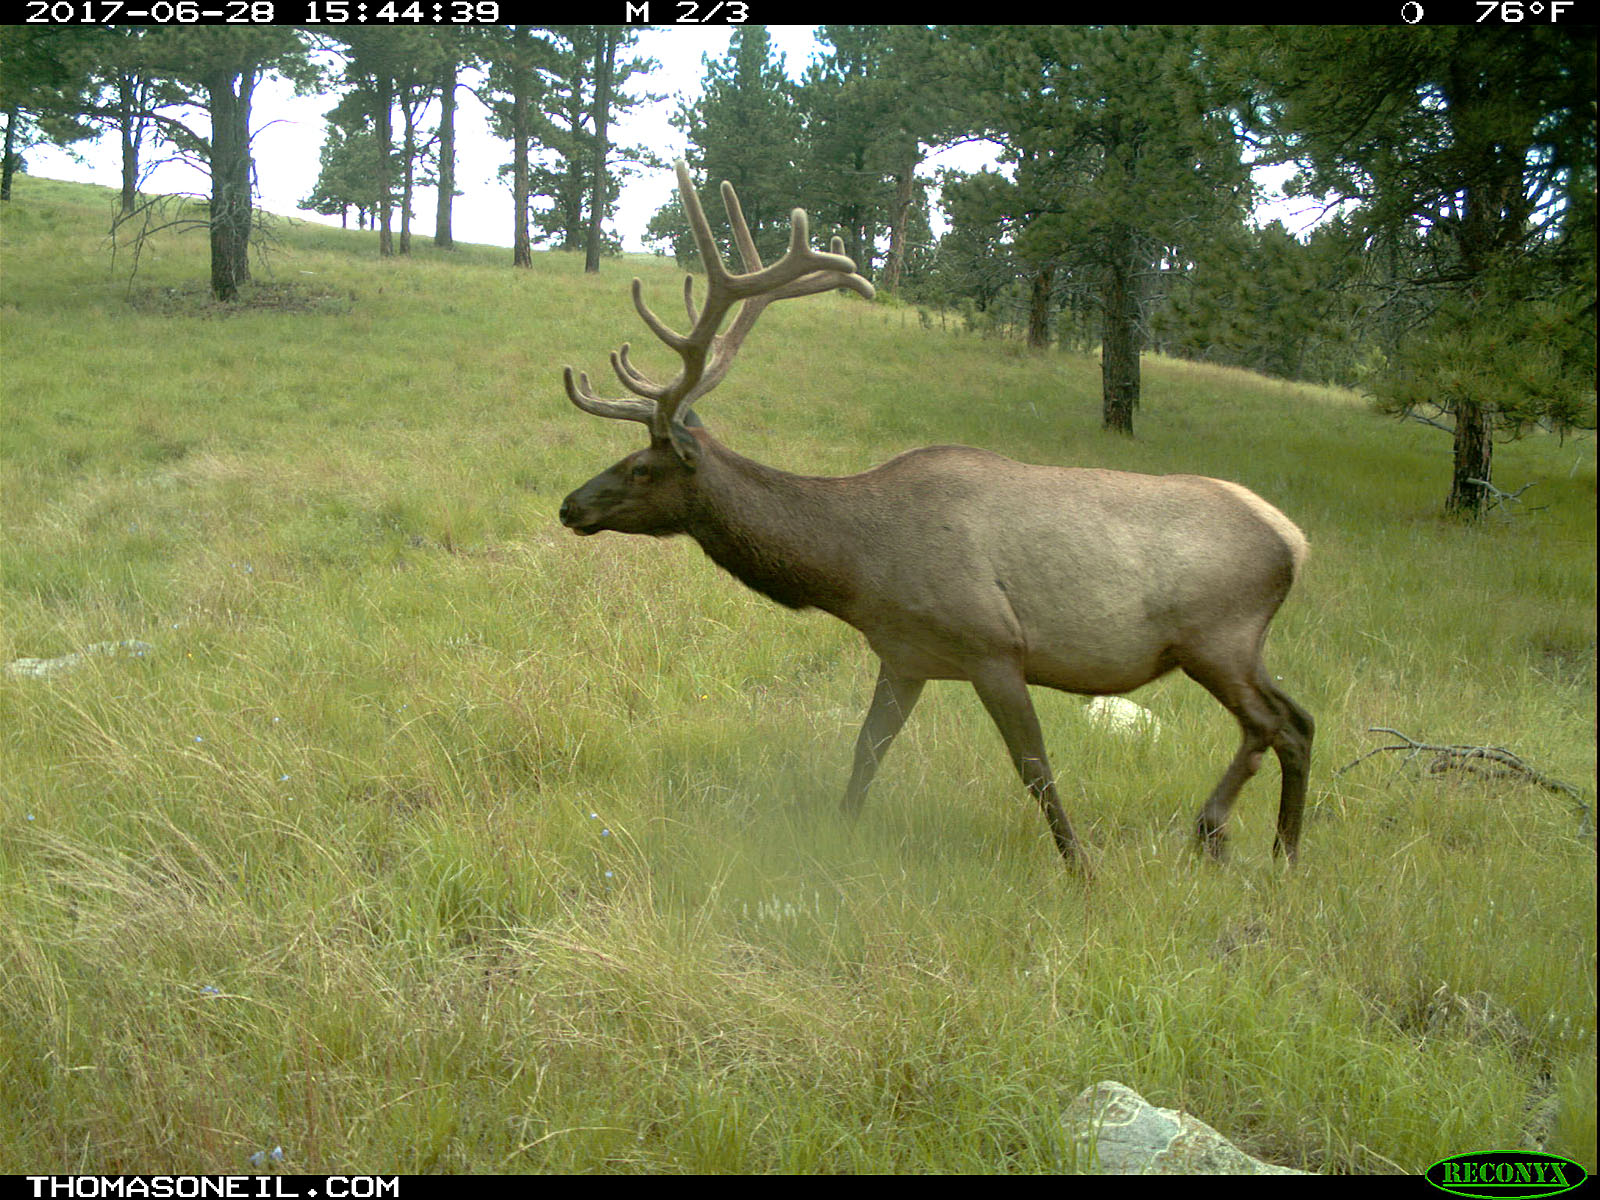 Elk, June 28, 2017.  Click for next photo.